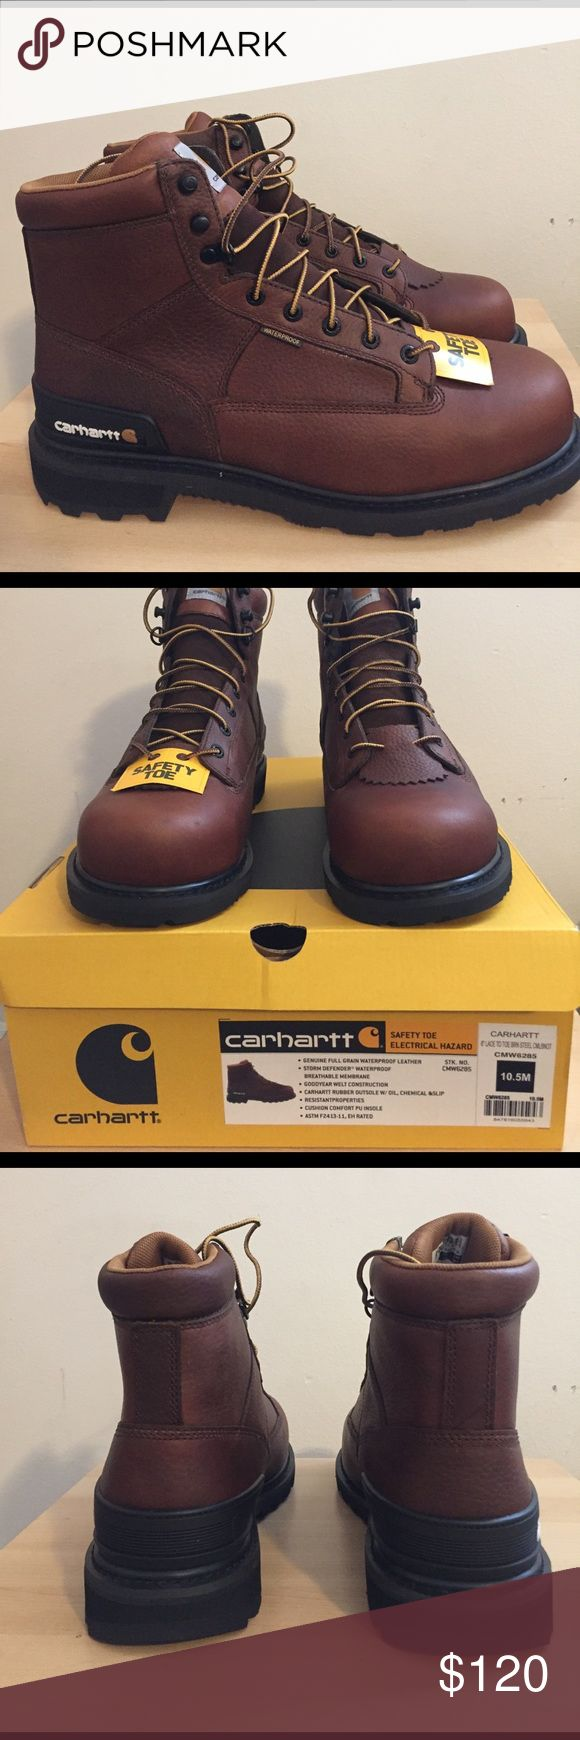 """Brand New Carhartt 6"""" Steel Toe Work Boot CMW6285 Camel brown oil tanned leather upper Storm Defender waterproof breathable membrane Goodyear welt construction with Carhartt rubber outsole PU strobel pad with PU cushion insoles TPU heel stabilizer and lace in kiltie Steel-Toe rated ASTM 2413-11 EH Carhartt Shoes Boots"""